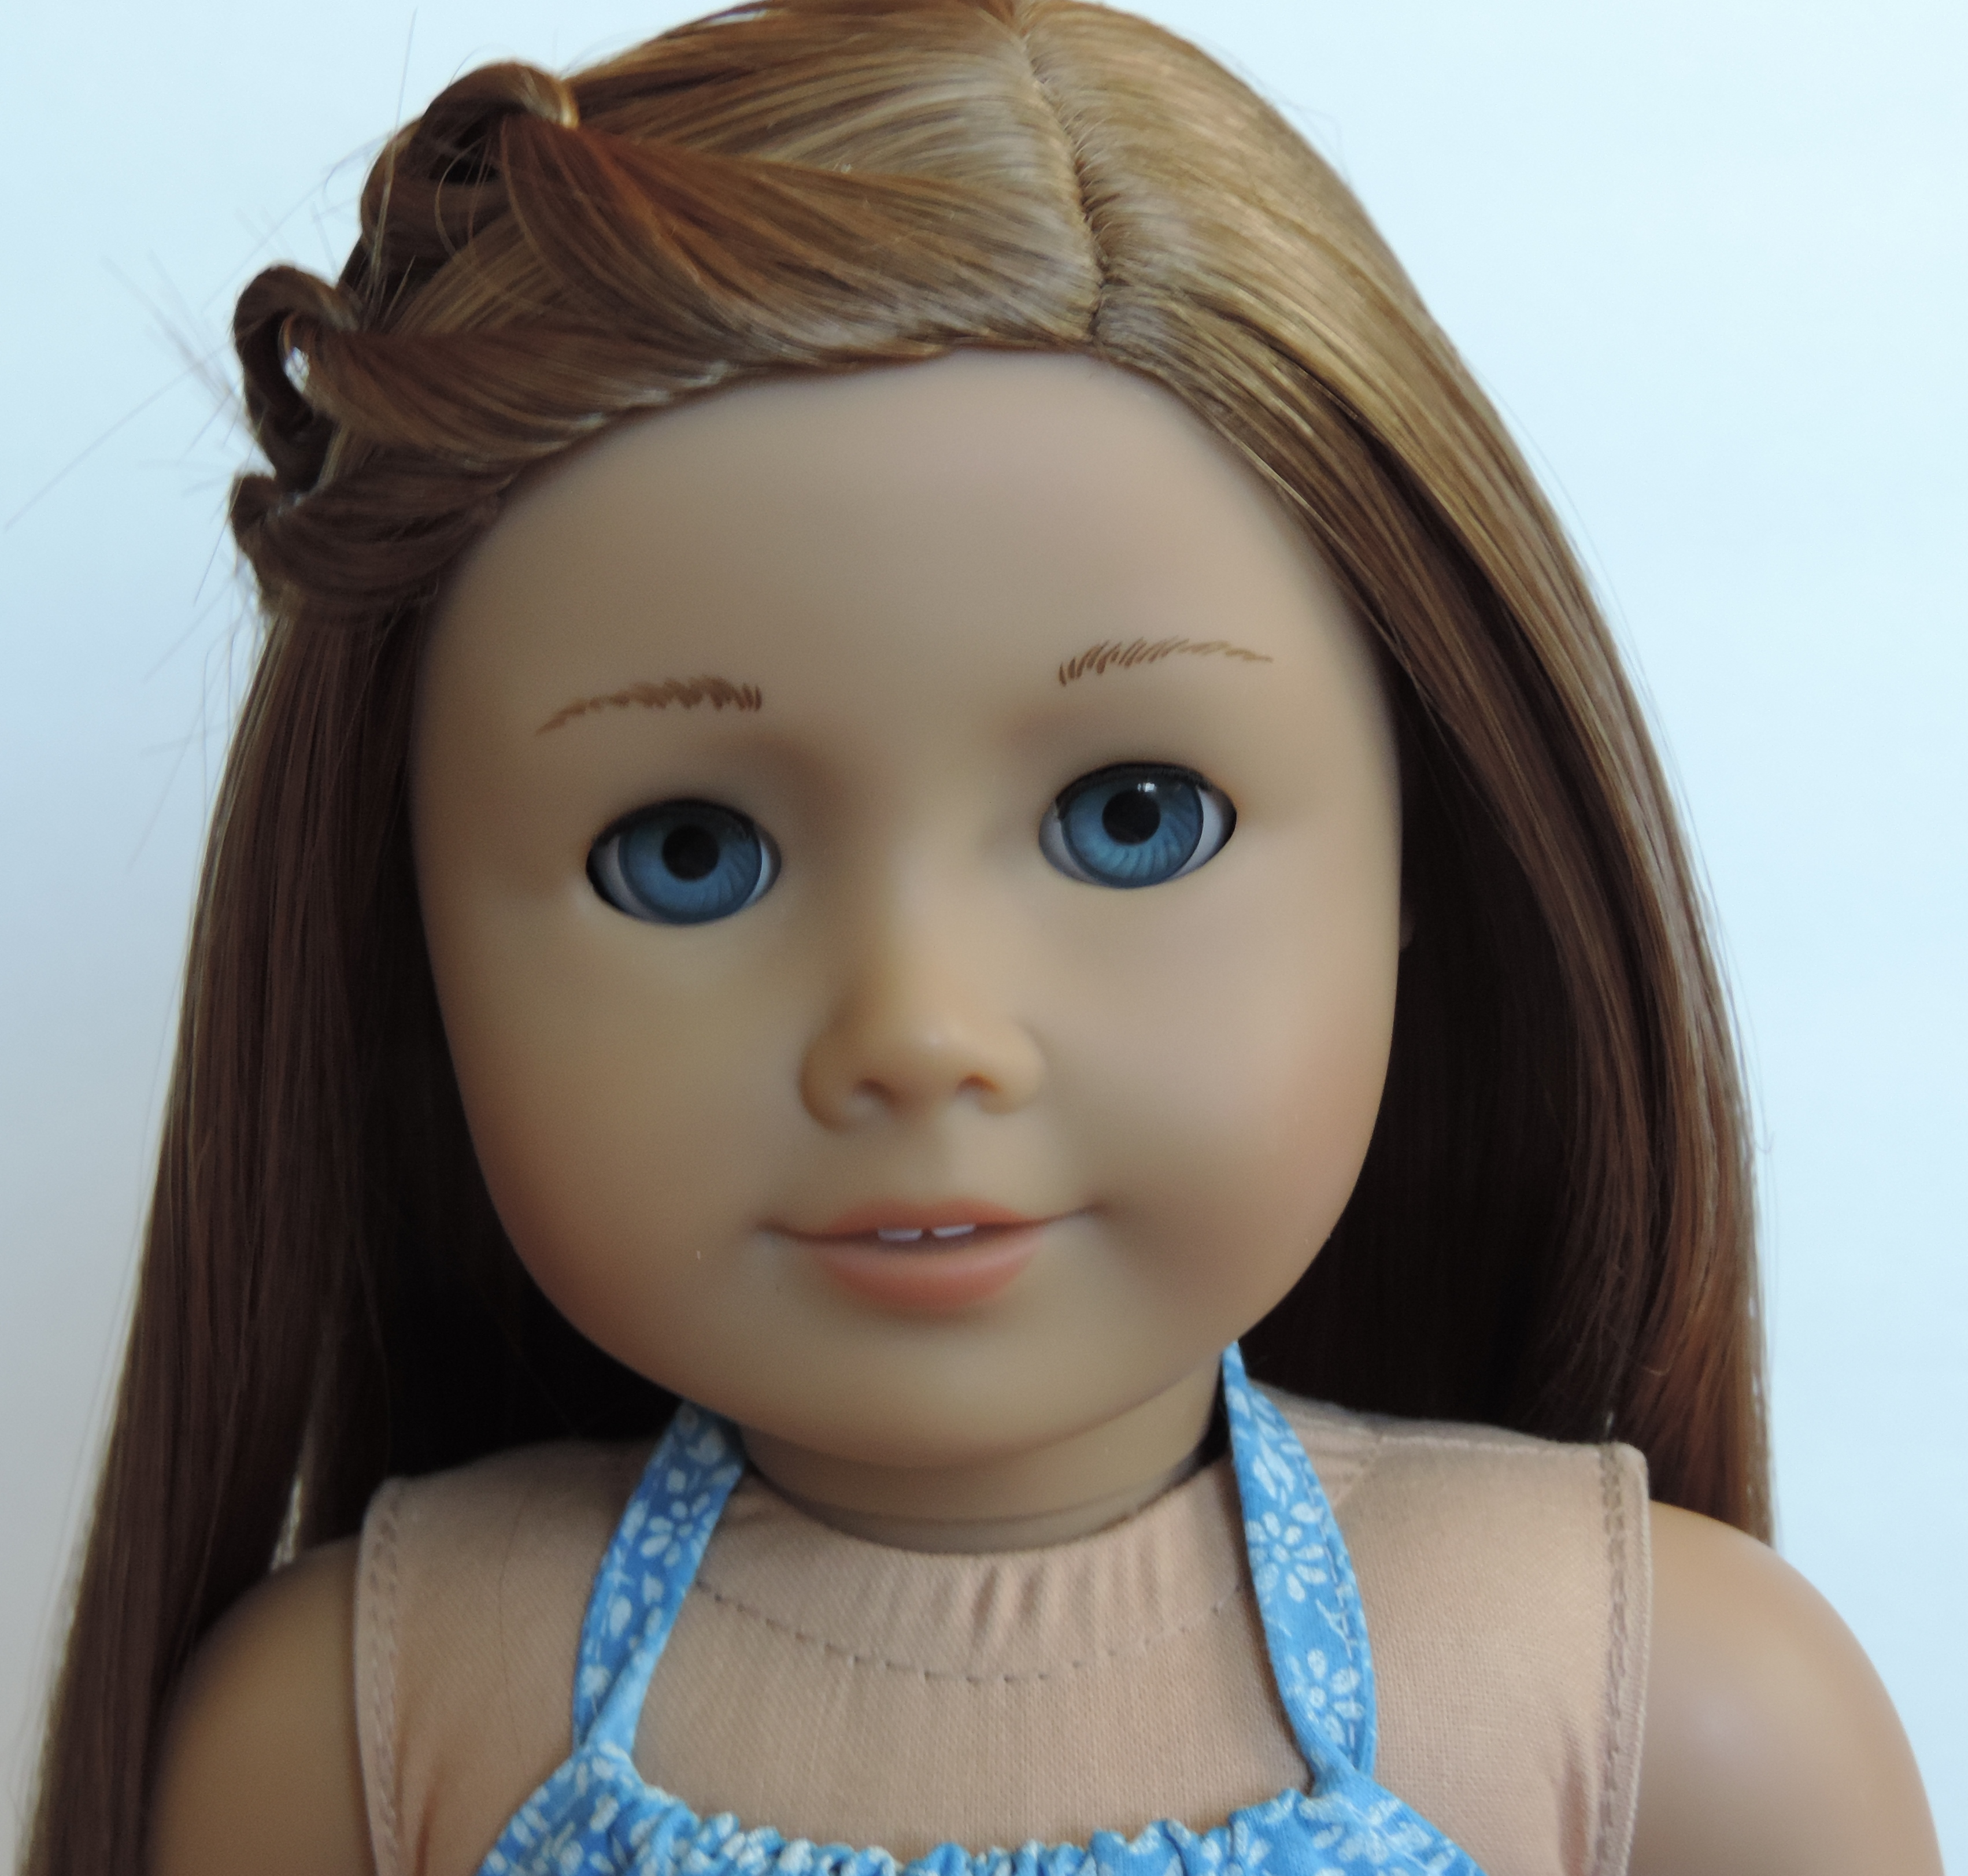 Cool American Girl Doll The By Kids For Kids Blog Short Hairstyles Gunalazisus